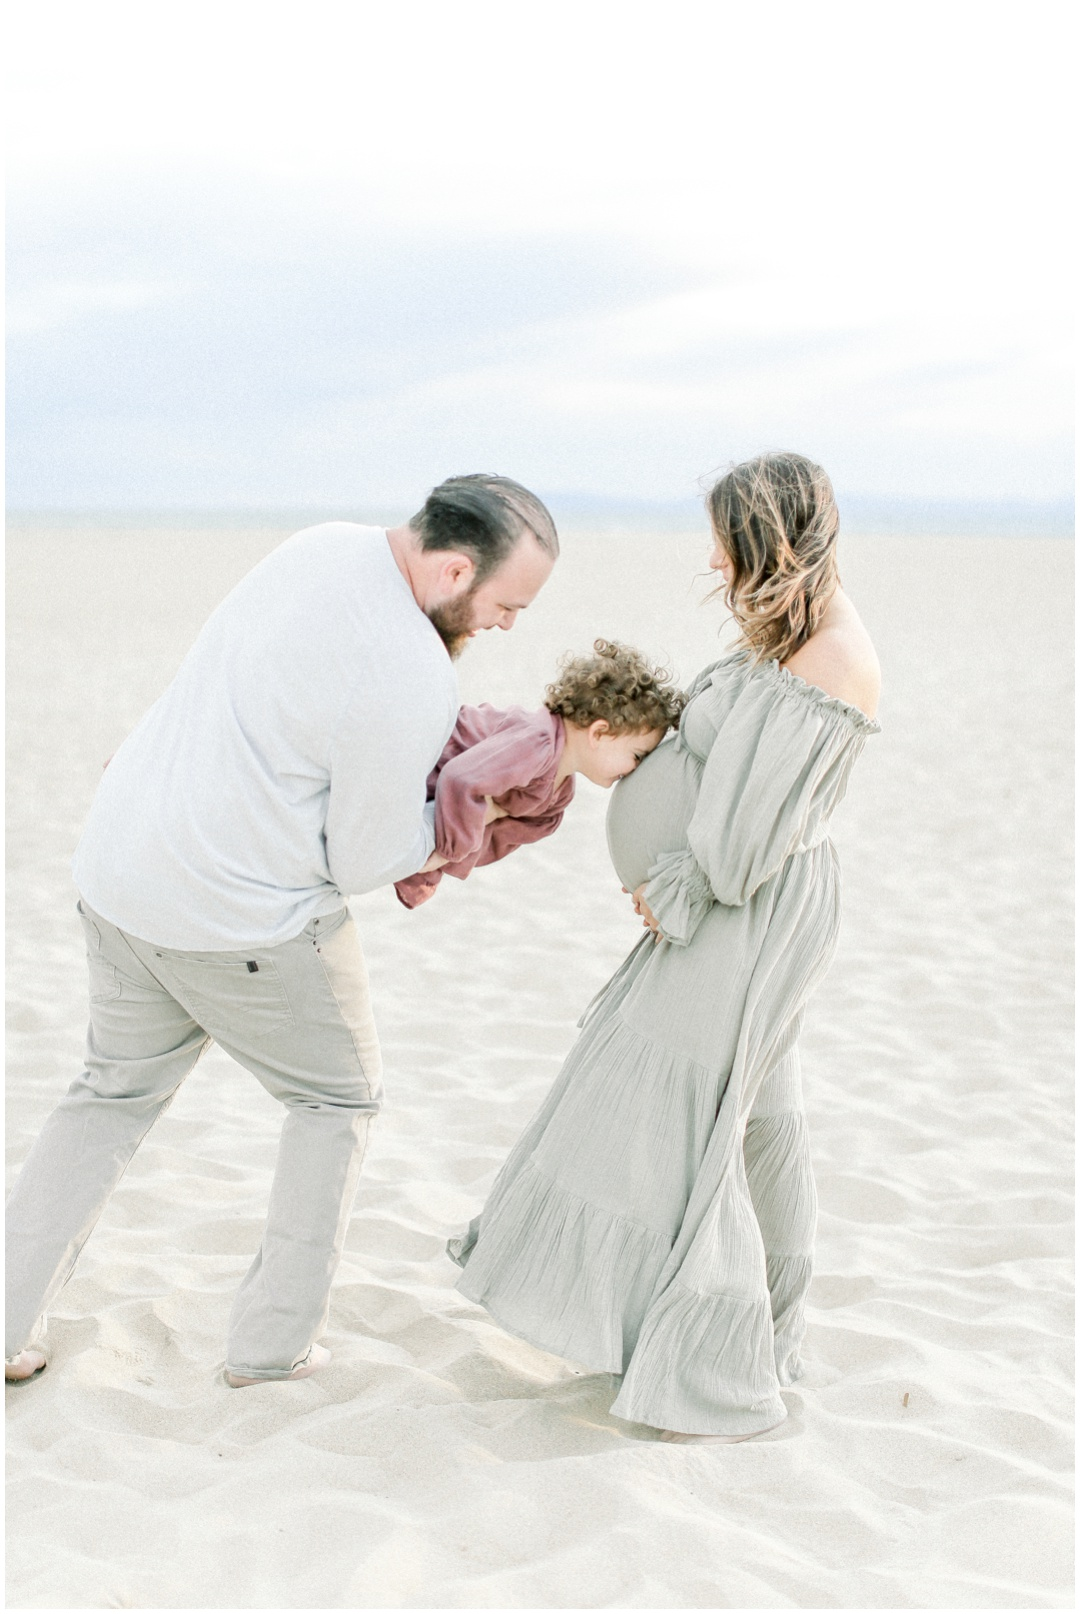 Newport_Beach_Newborn_Light_Airy_Natural_Photographer_Newport_Beach_Photographer_Orange_County_Family_Photographer_Cori_Kleckner_Photography_Huntington_Beach_Photographer_Family_OC_Newborn_Melissa_Scharf_Newborn_Family__3326.jpg